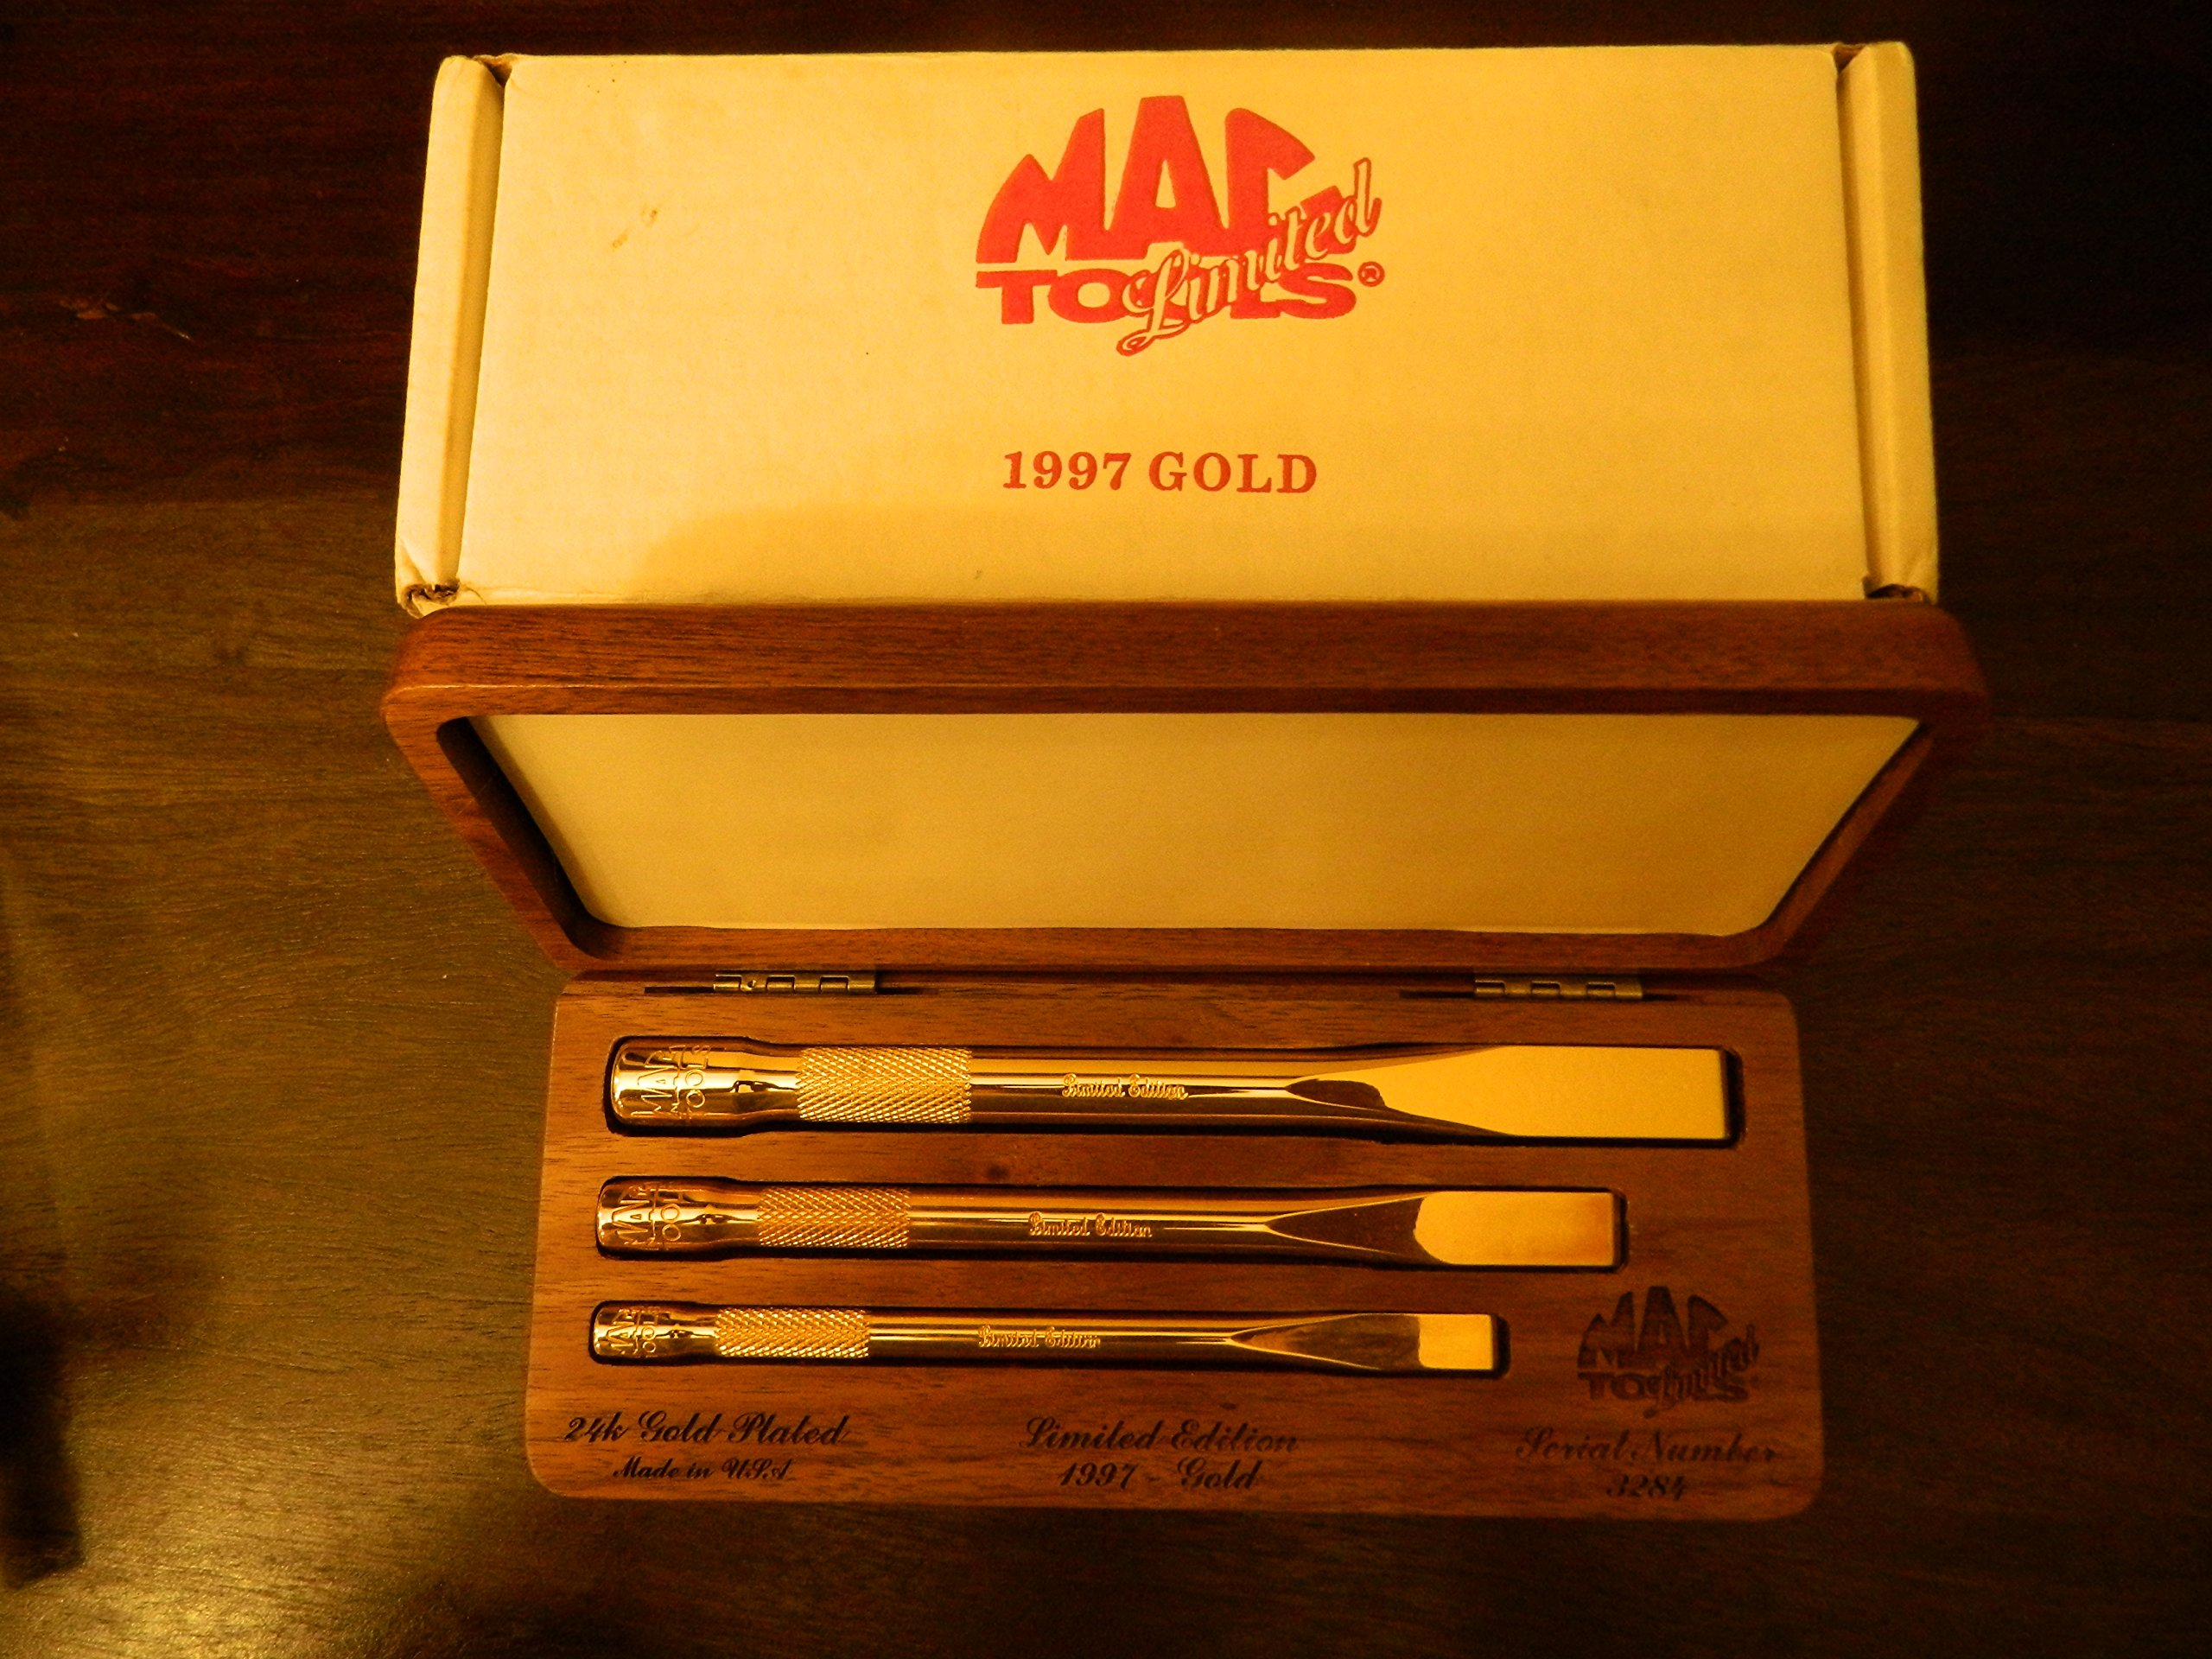 Mac Tools 1997 Limited Edition Set of 3, 24K Gold Plated Chisel, MADE IN USA, Serial #3284